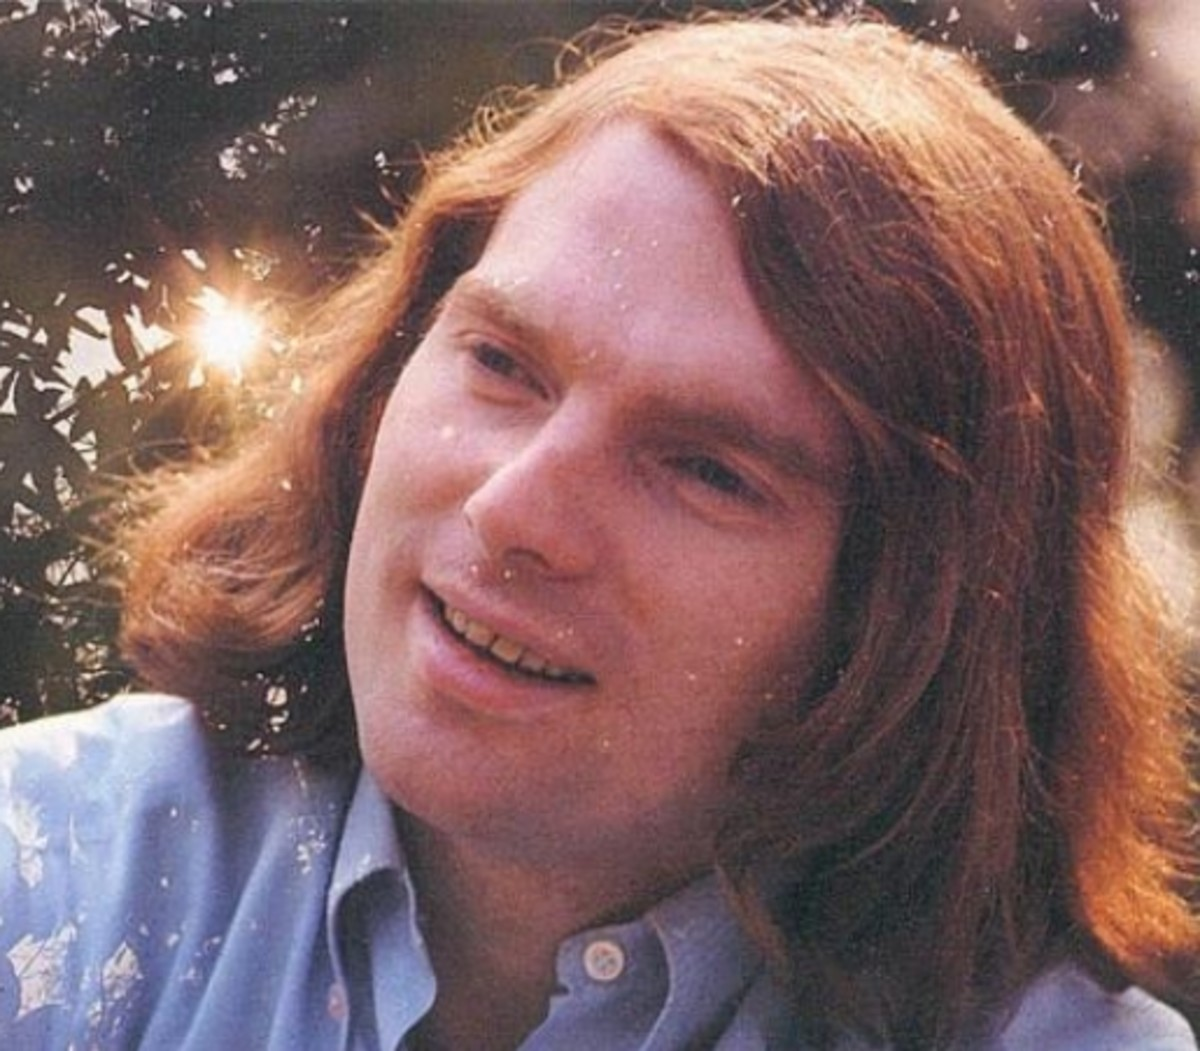 Ten Best Van Morrison Songs of All Time